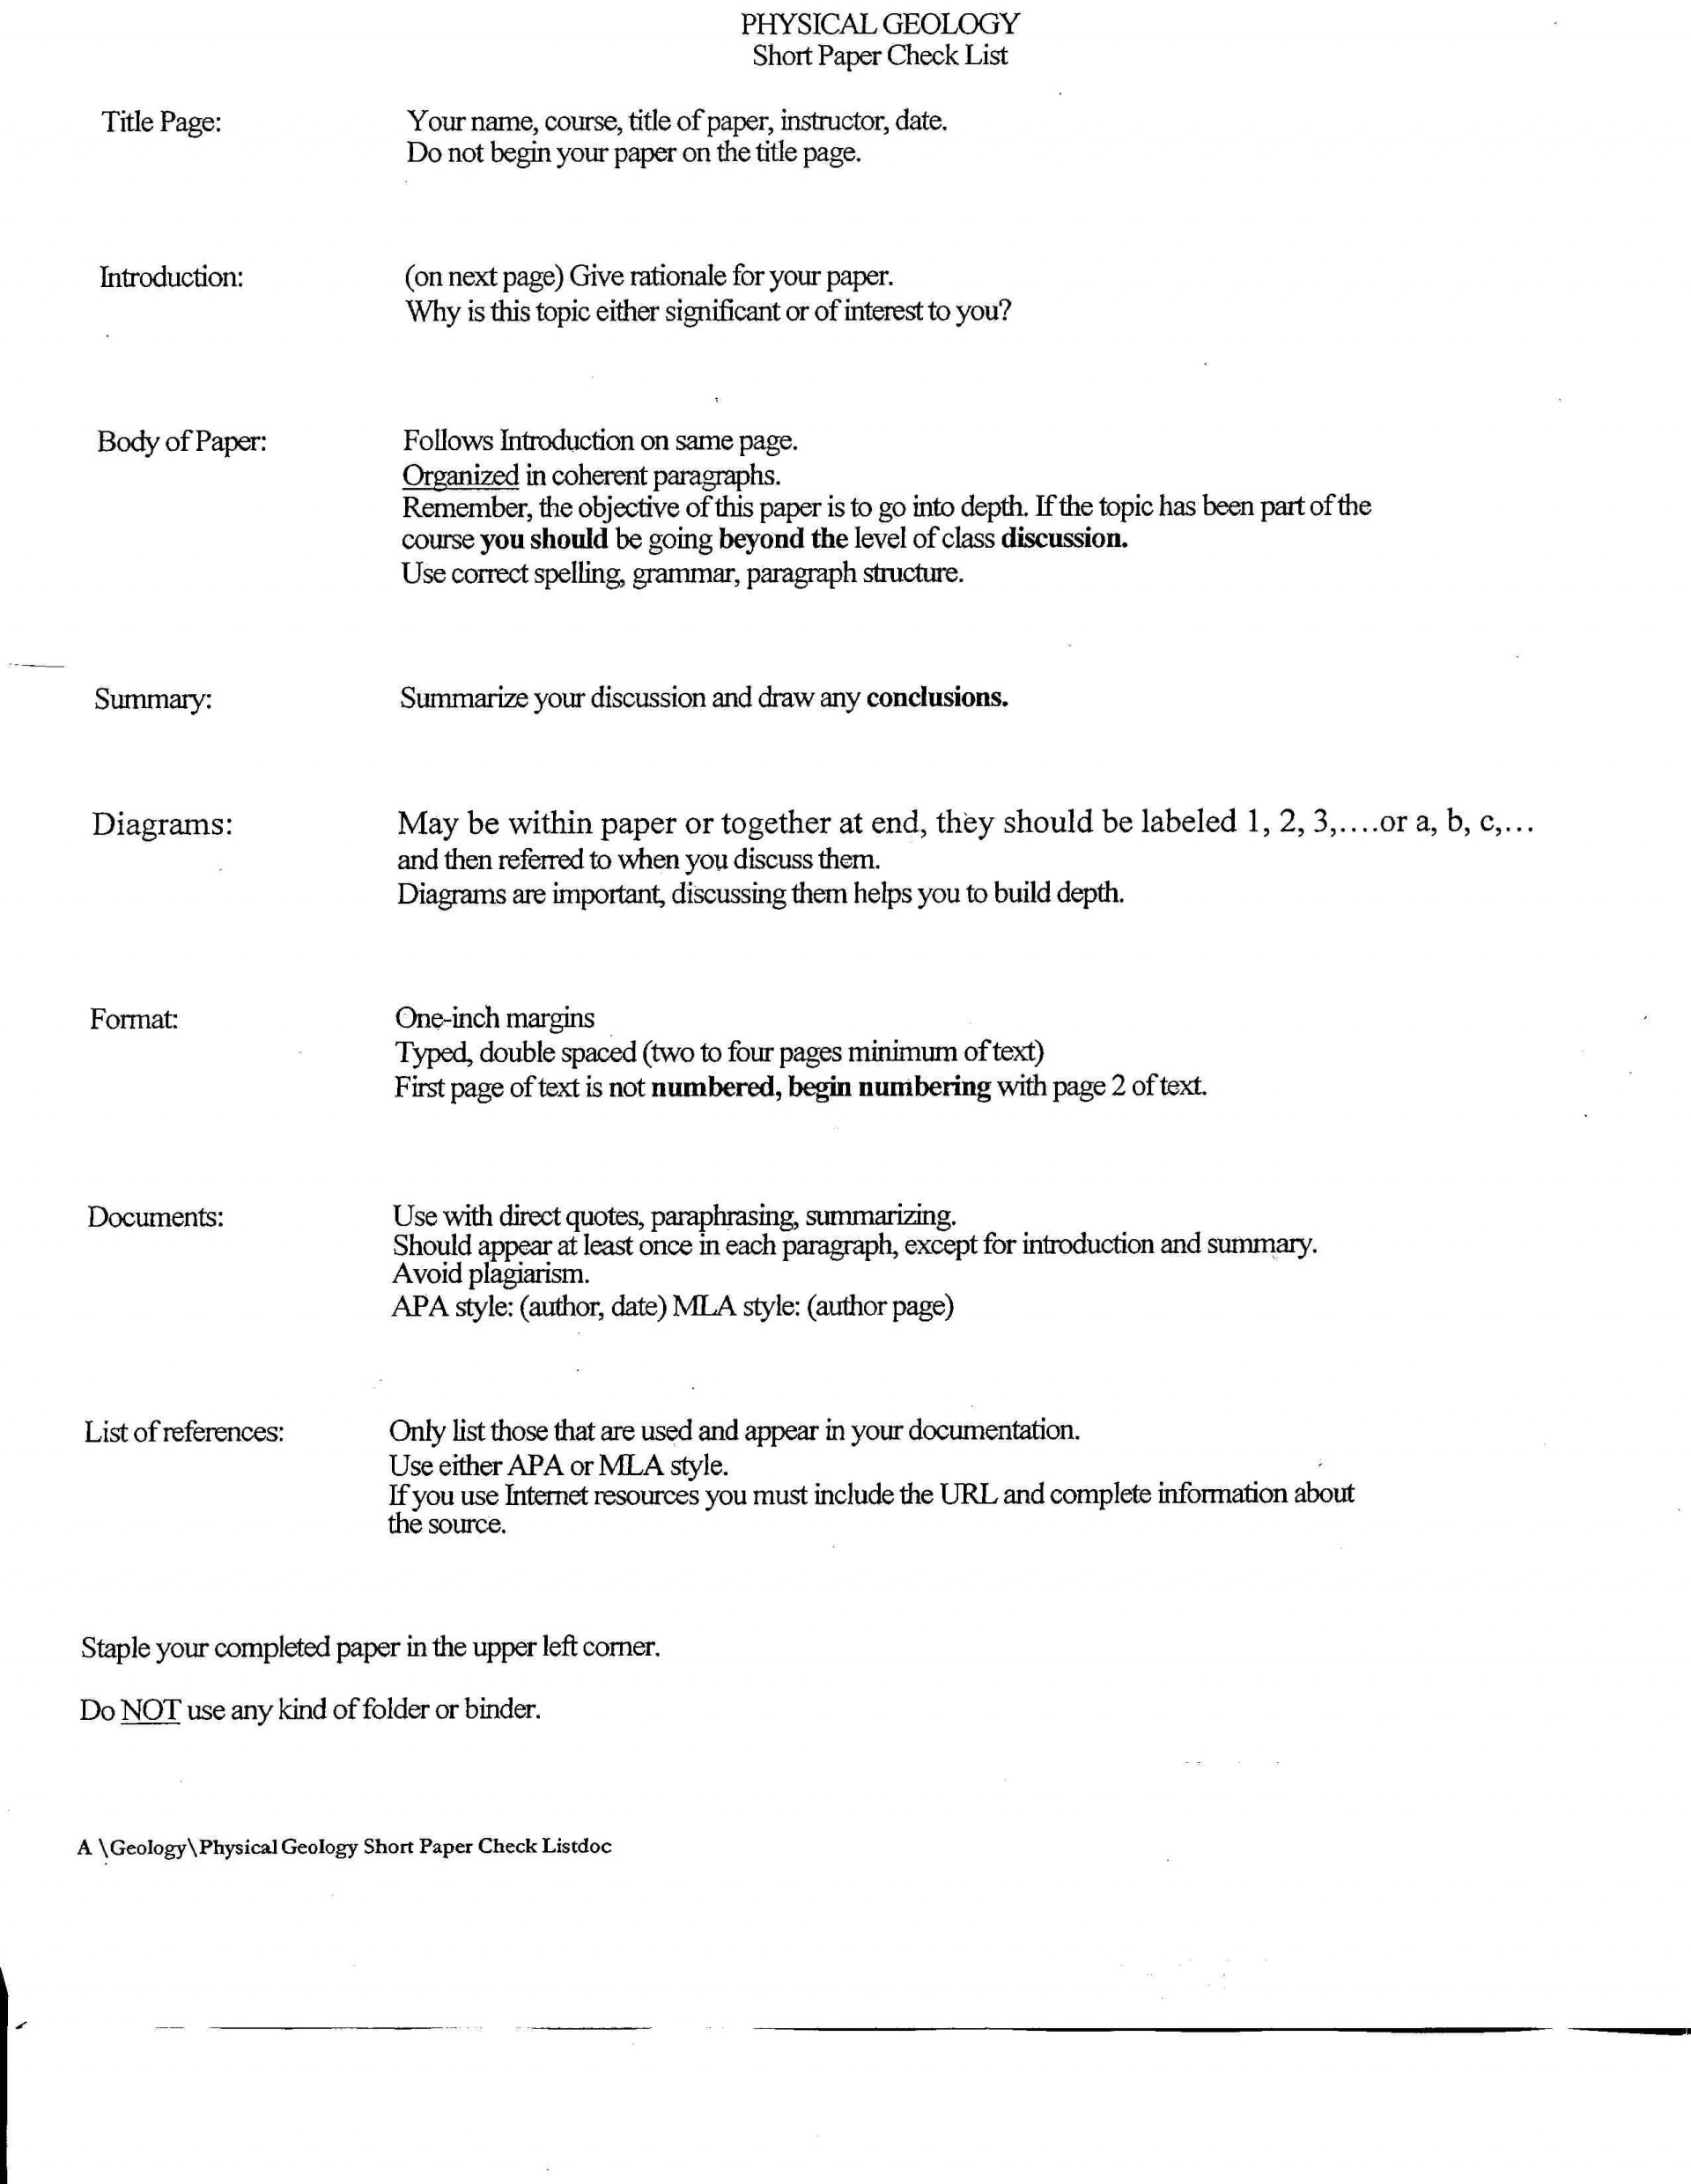 008 Research Paper Short Checklist Business Papers Exceptional Samples Examples Topics 1920